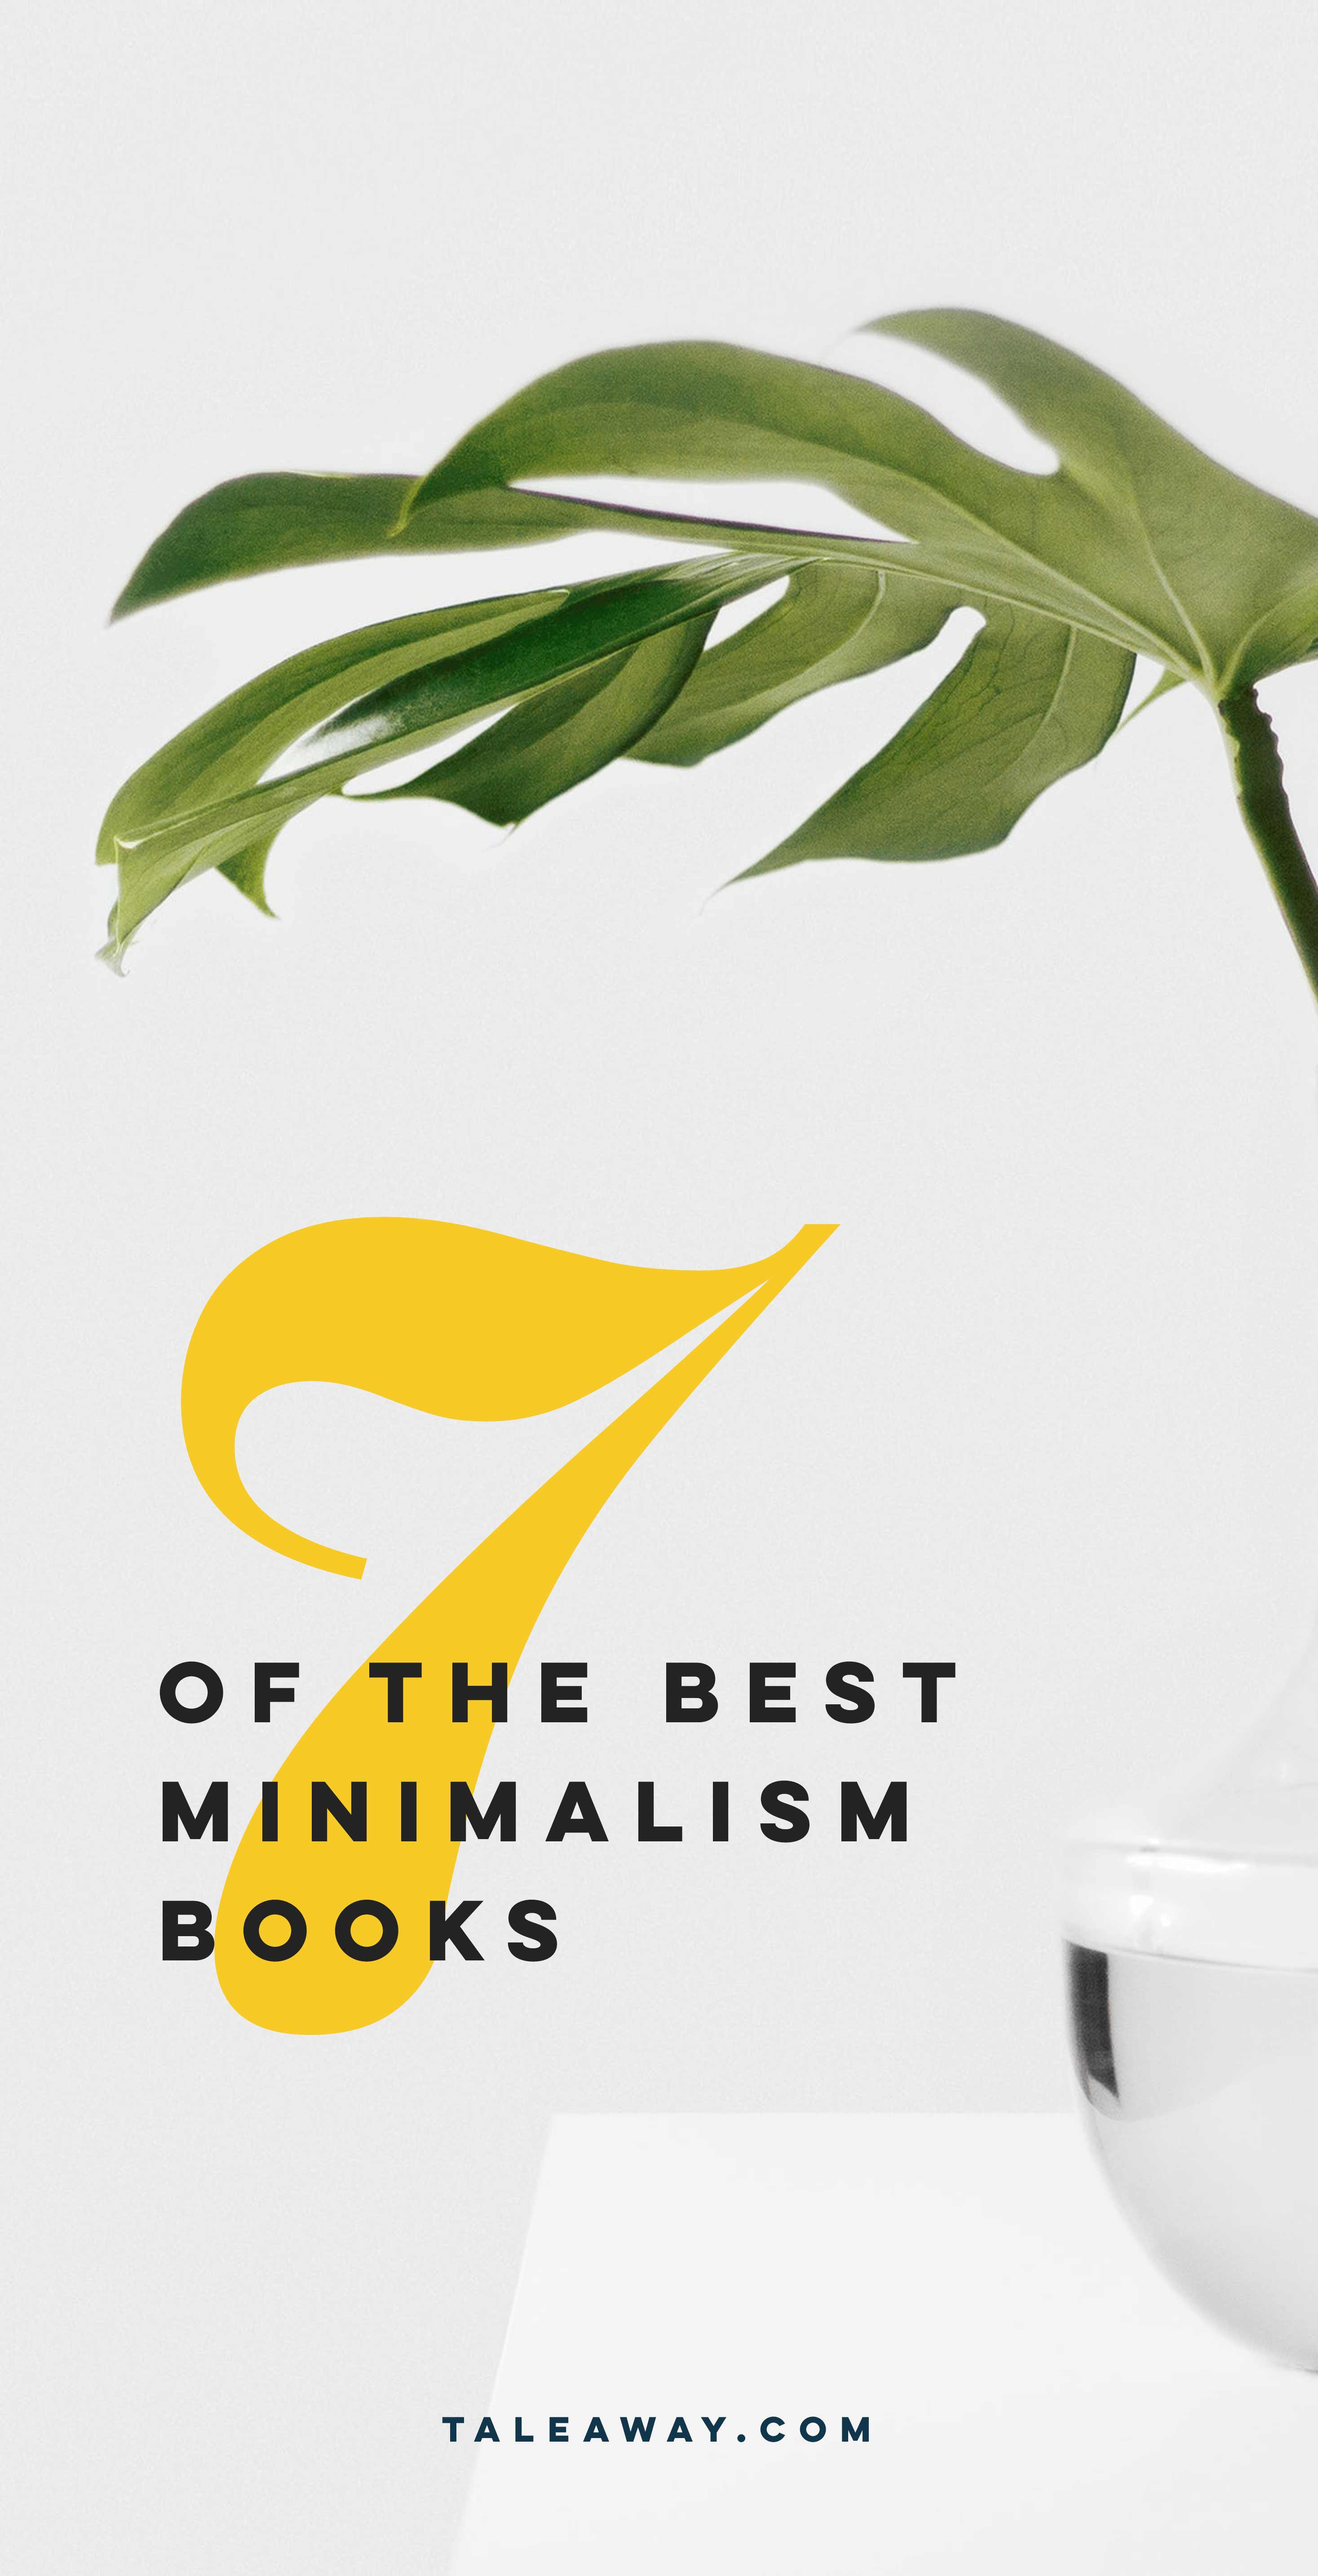 7 Best Minimalism Books - Books about minimalism for people who love reading. For more book ideas visit www.taleway.com to find books set around the world. Ideas for those who like to travel, both in life and in fiction. minimalism, books, minimalism books, how to become minimalist, minimalism lifestyle, minimalism home, minimalism for beginners, minimalism guide, minimalism how to, minimalism inspiration, books about minimalism